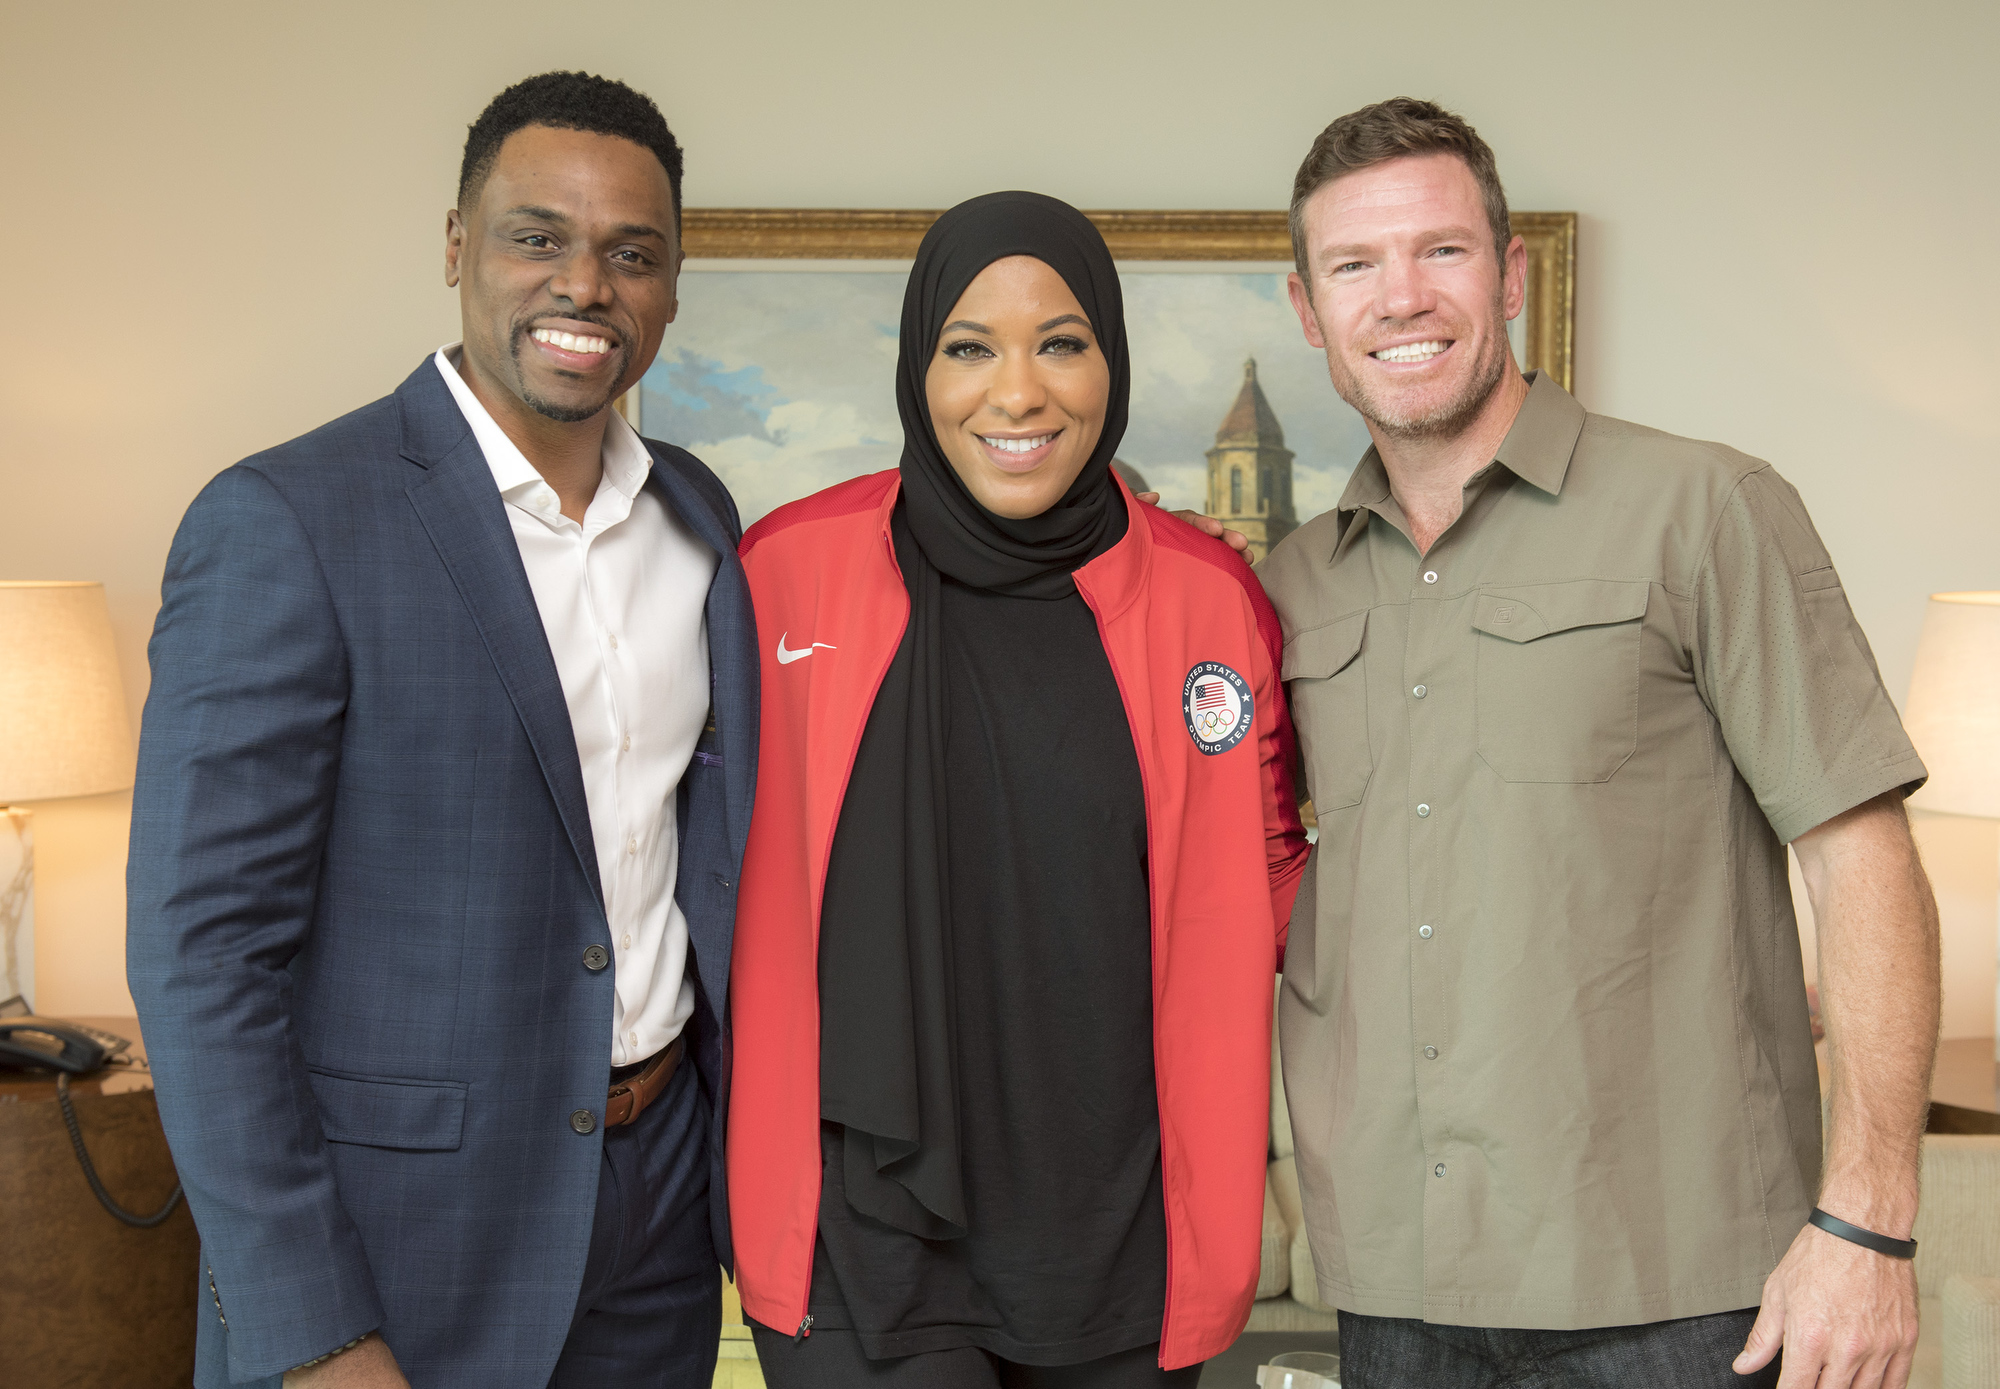 Daron K. Roberts, Ibtihaj Muhammad and Nate Boyer   On Tuesday, September 18, 2018, the LBJ Presidential Library partnered with the University of Texas at Austin's Center for Sports Leadership & Innovation and UTÕs Center for Sports Communication & Media for an evening of conversation about equality in sports. The event featured U.S. Olympic female fencer Ibtihaj Muhammad, a bronze medal winner; Nate Boyer, a former UT football player, Green Beret and NFL player; and Daron K. Roberts, founding director of the Center for Sports Leadership & Innovation. The event was tied to the LBJ LibraryÕs special exhibition, Get in the Game: The Fight for Equality in American Sports, on view through Sunday, Jan. 13, 2019. The conversation was moderated by Mark K. Updegrove, president and CEO of the LBJ Foundation.    LBJ Library photo by Jay Godwin 09/18/2018